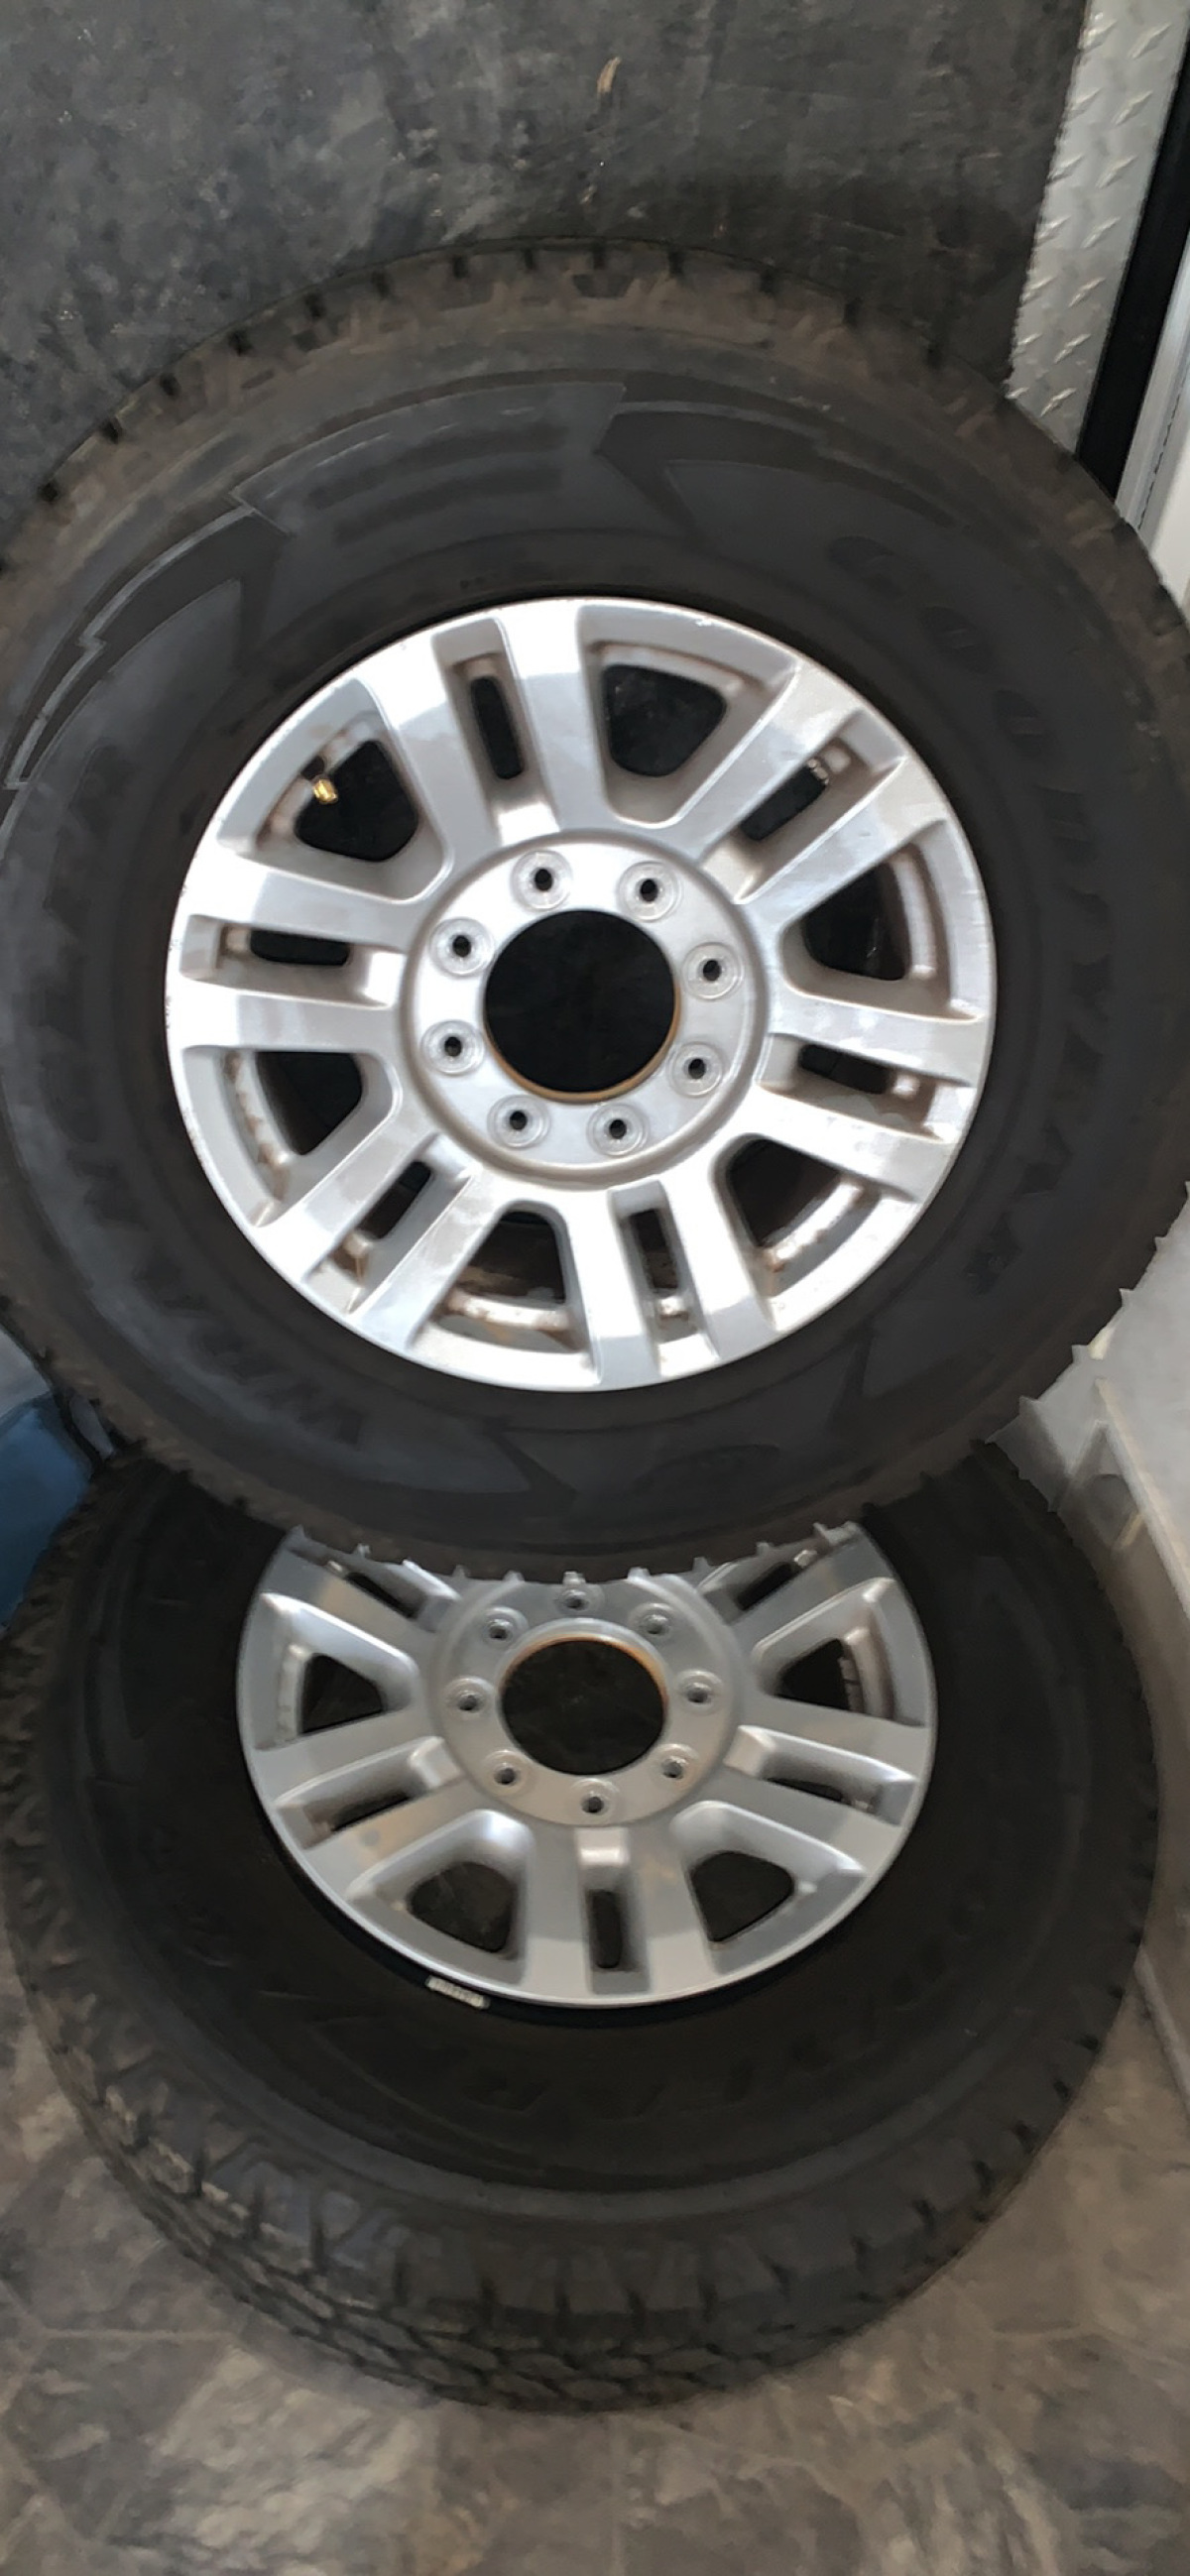 For Sale: 2020 Ford F-250 stock wheels and tires - photo0